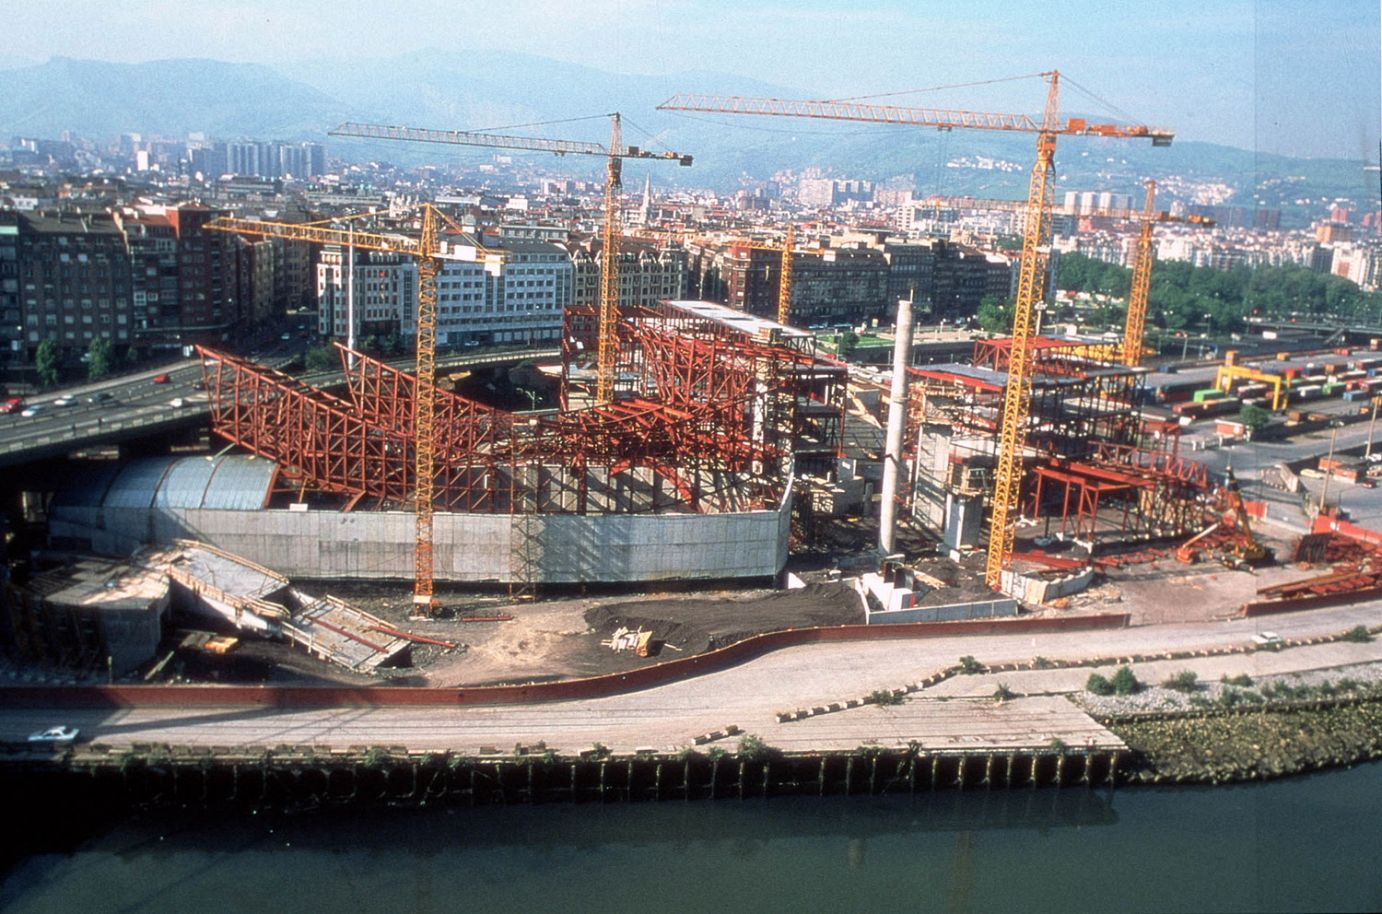 Aerial view of the cranes during construction | Guggenheim Bilbao Museoa